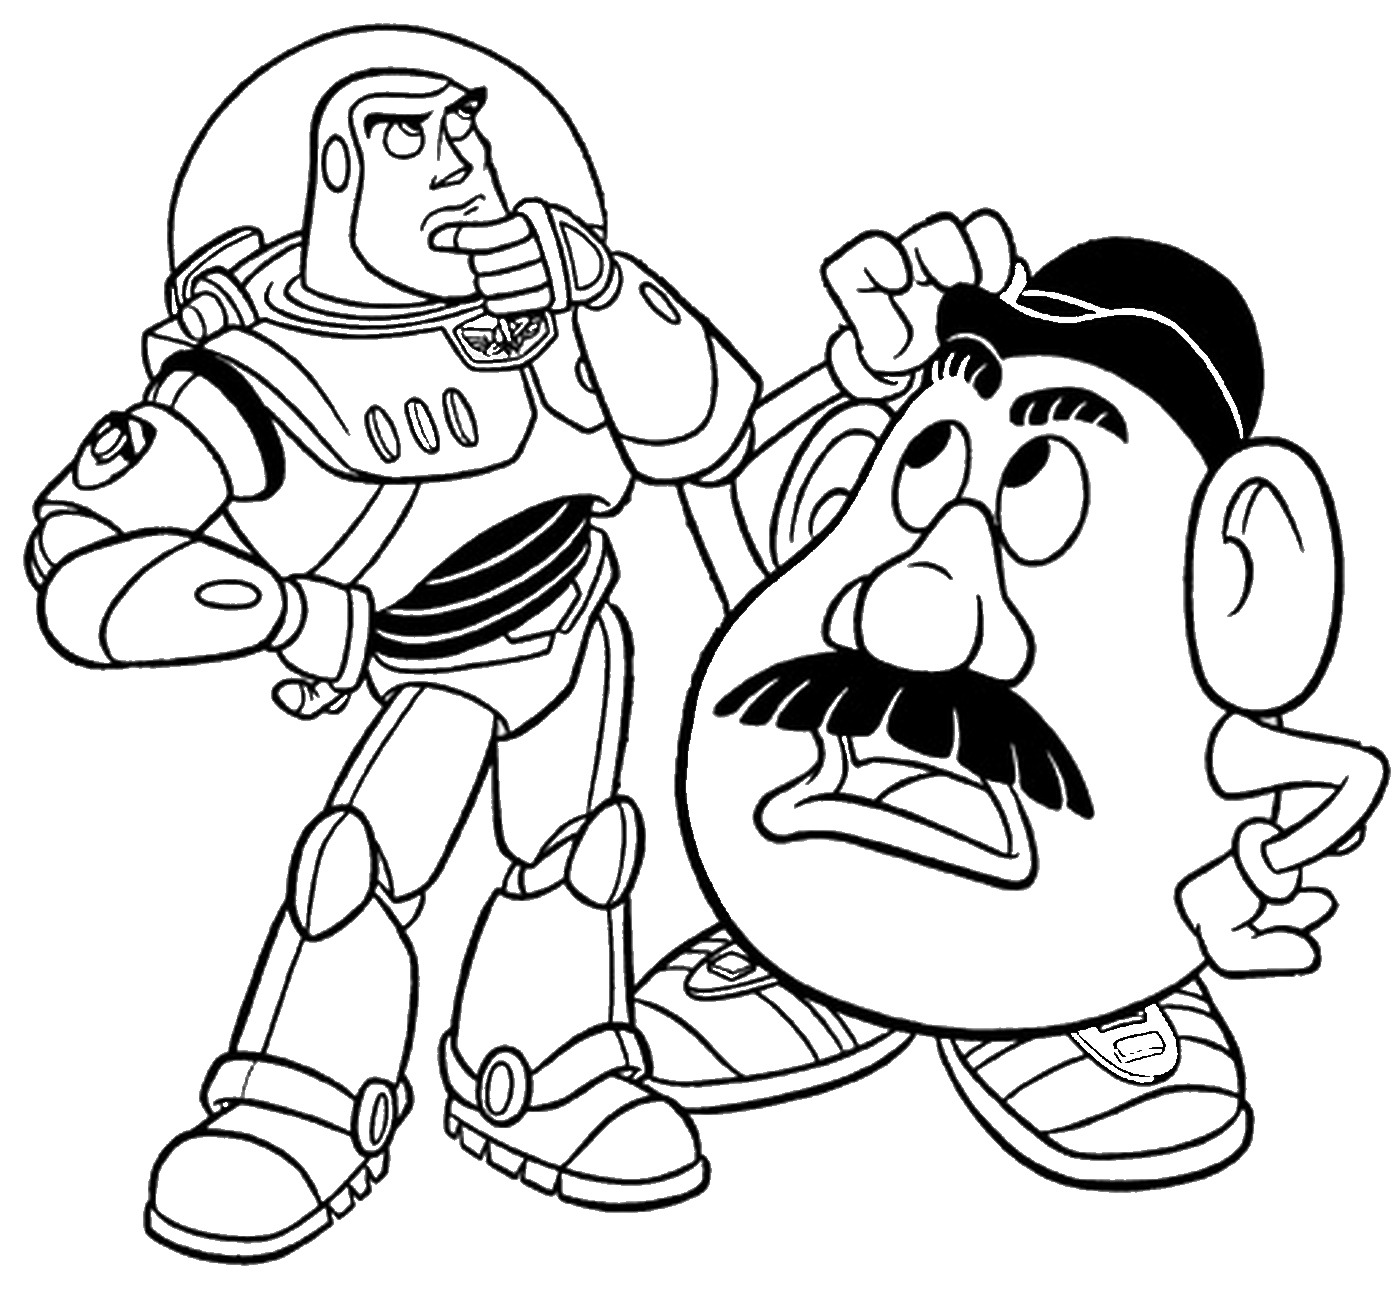 coloring toy story printables 30 free printable toy story coloring pages story printables coloring toy